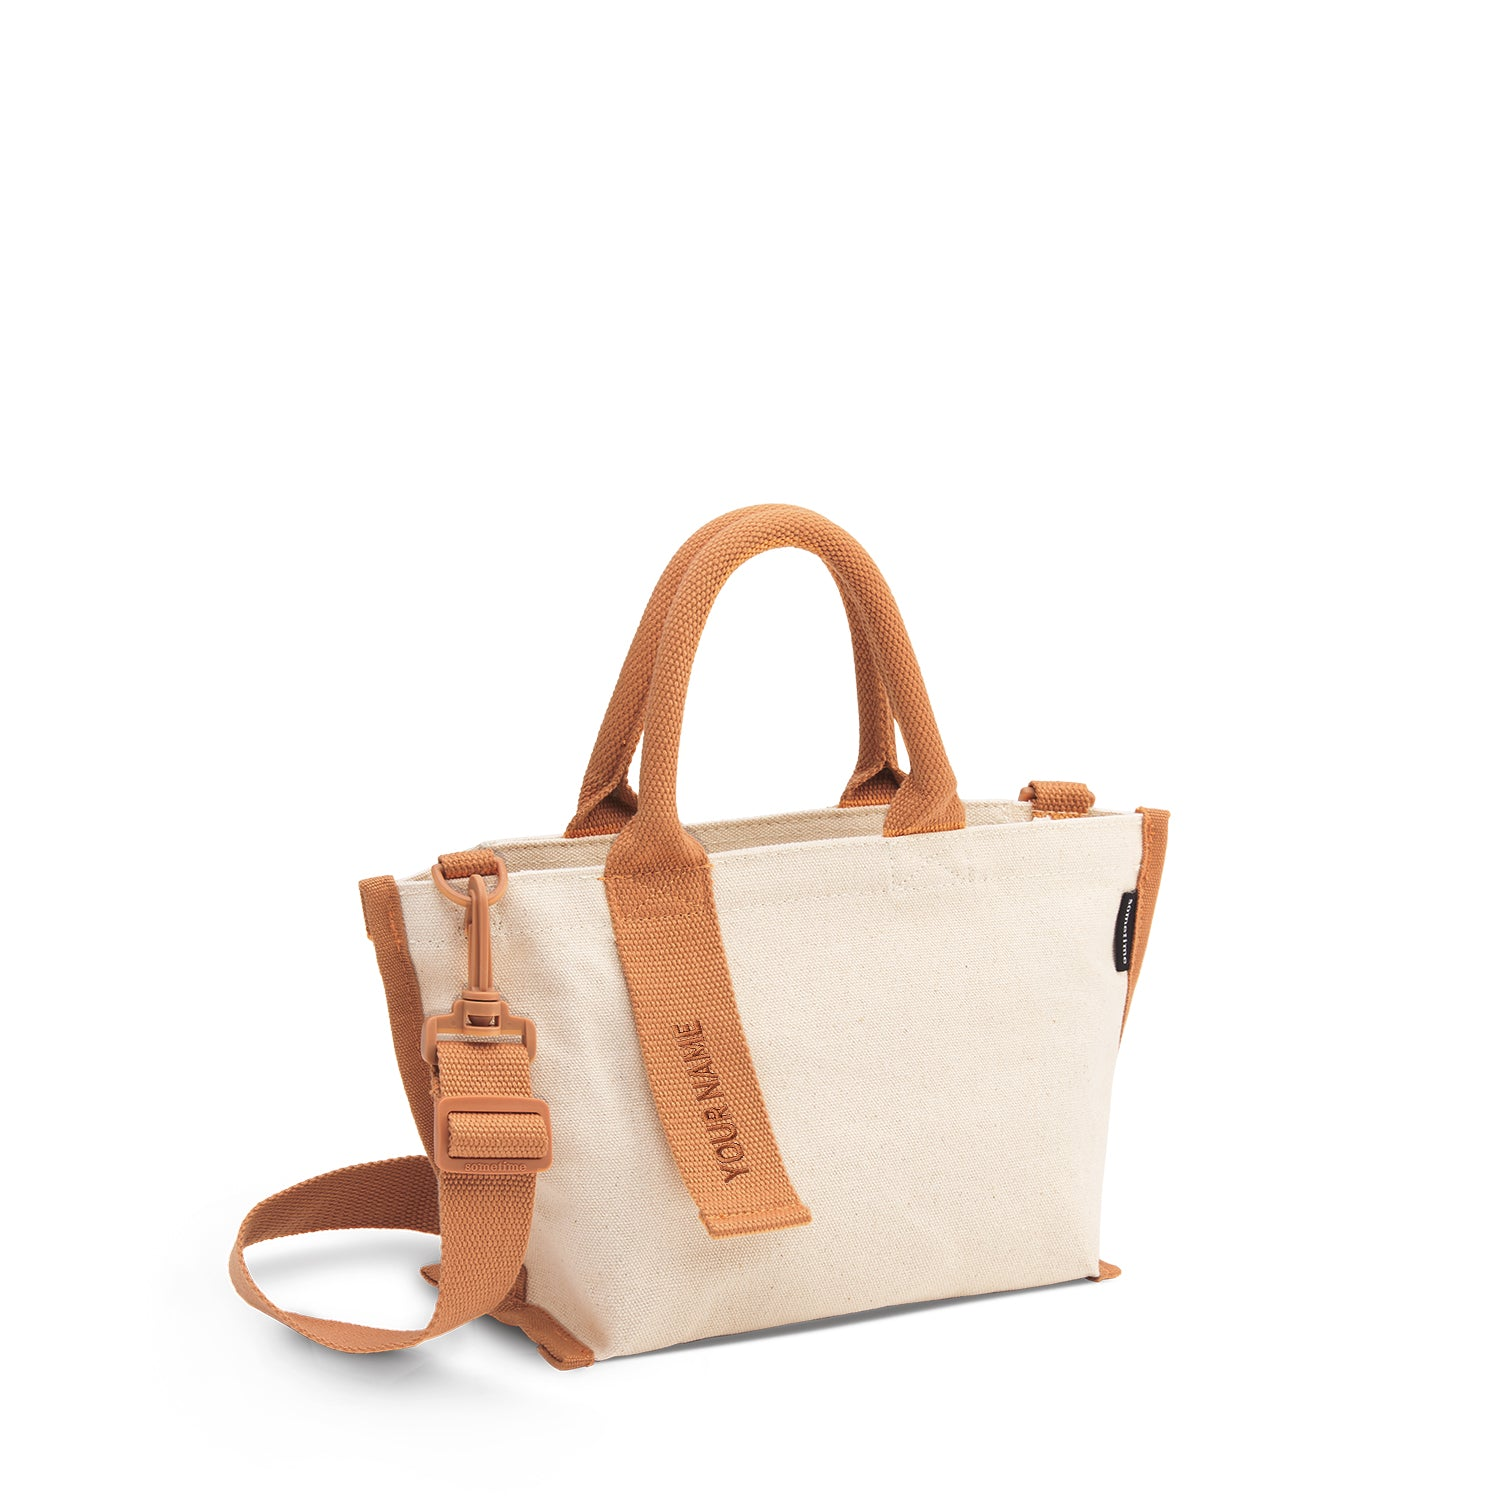 Eslona Mini - Beige/Nude Brown